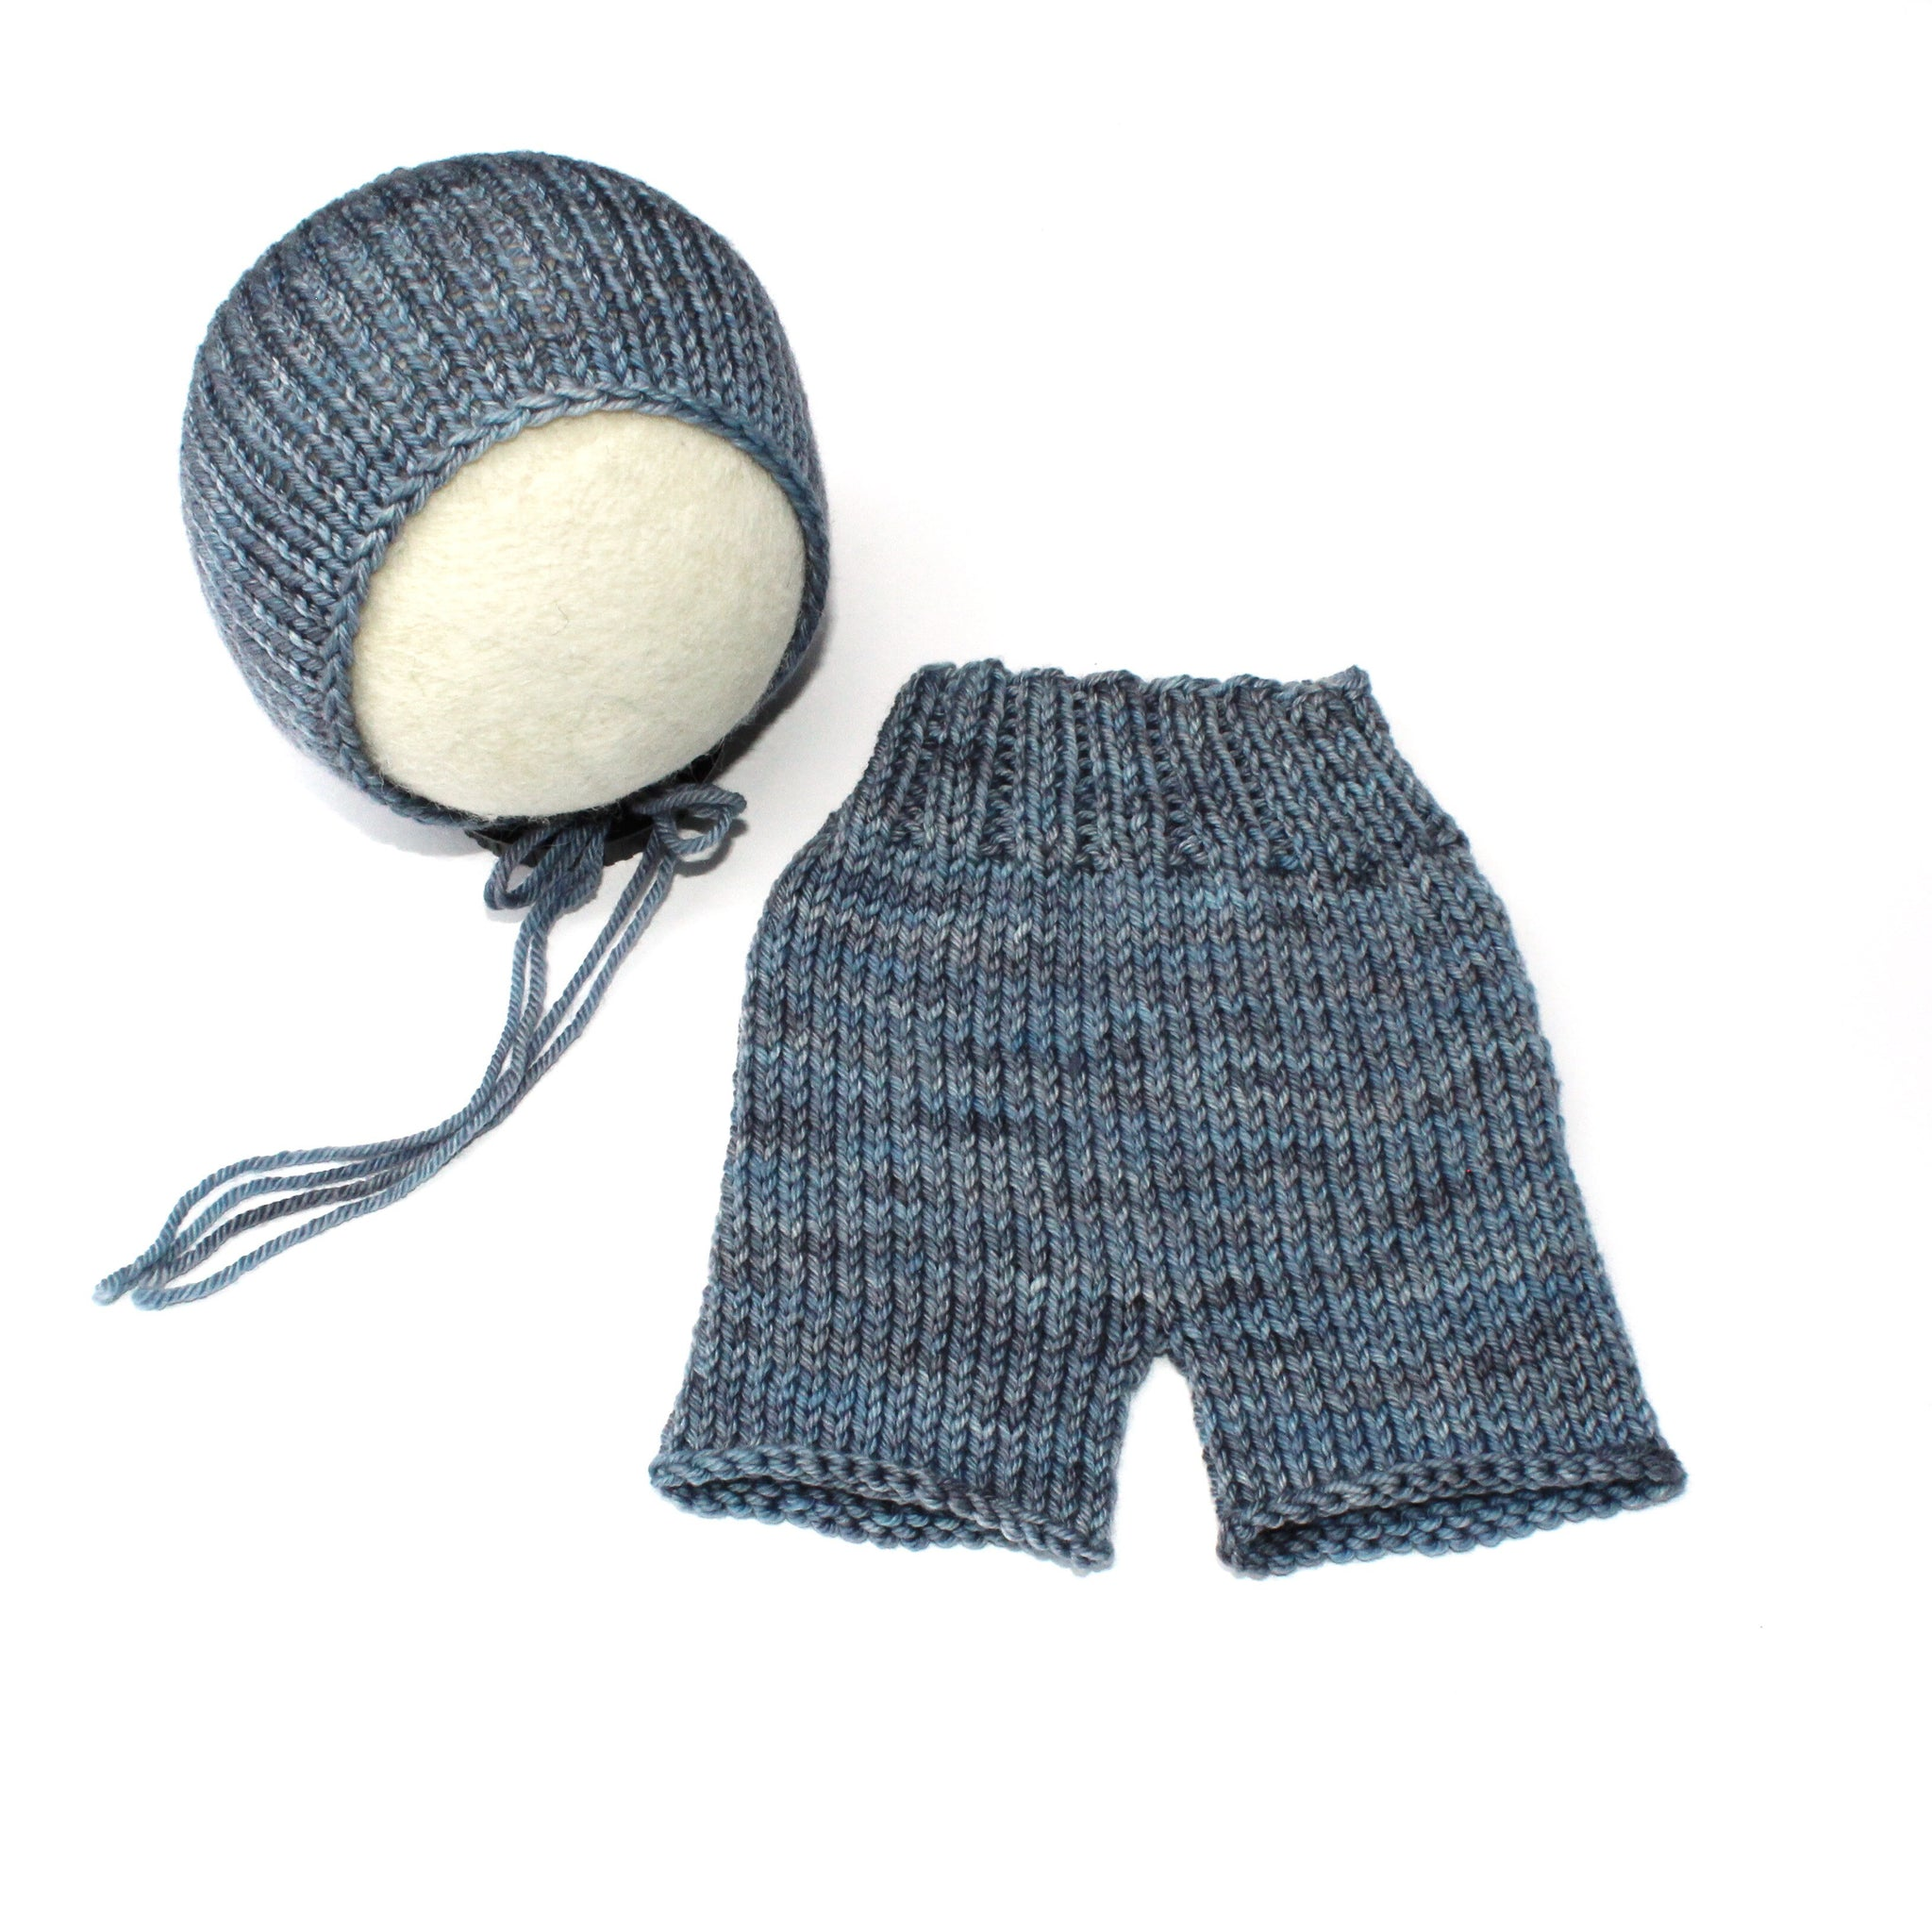 efa206a9a77 Little Boy Blue - Bonnet and Shorties - Newborn Photo Prop Set - Knit  Photography Props